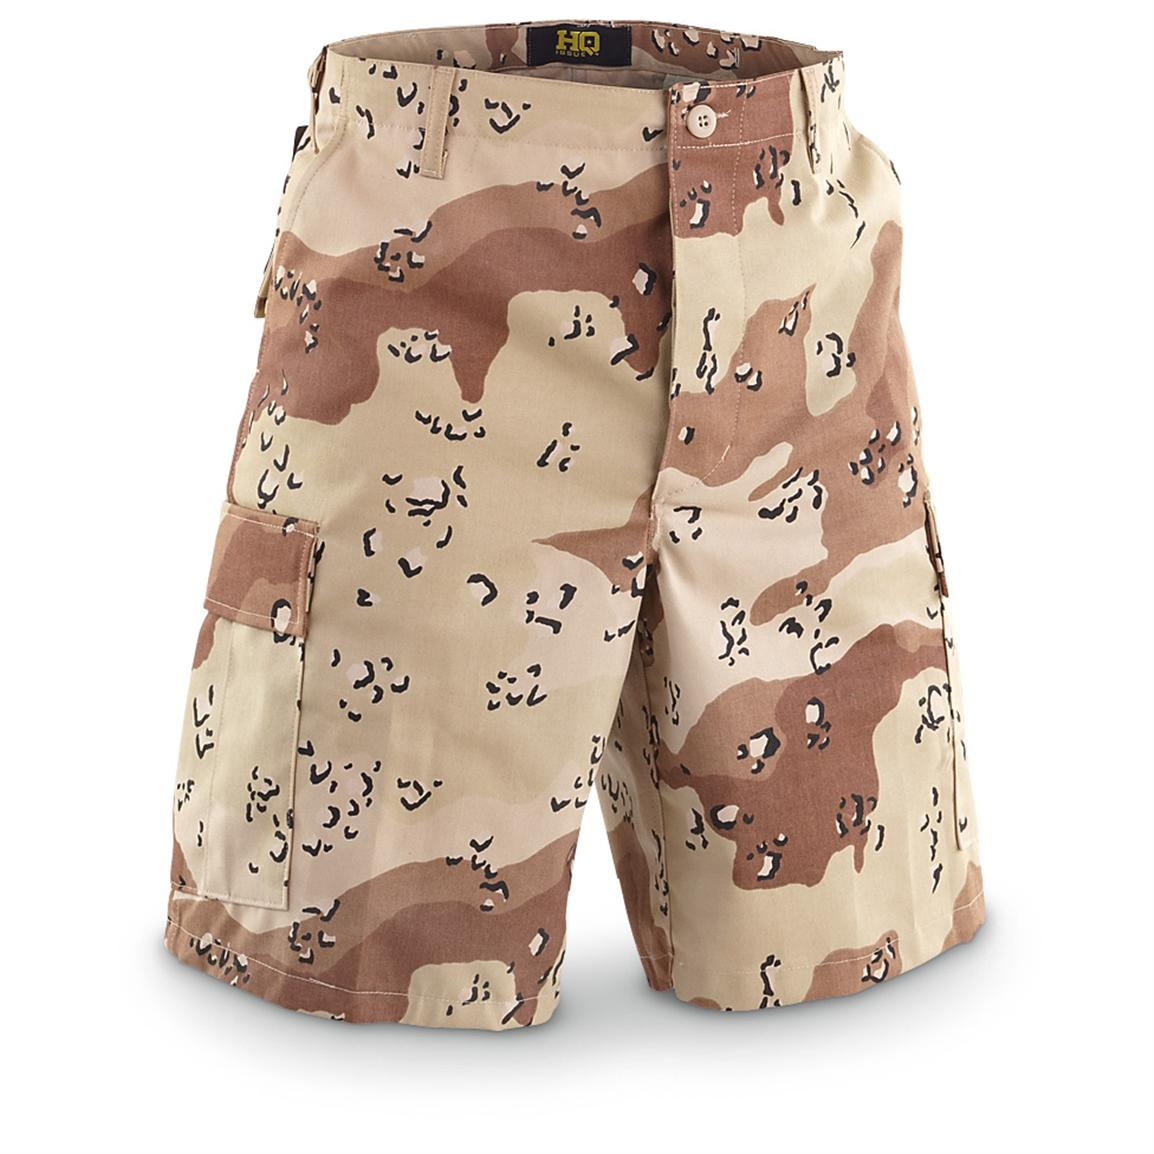 HQ ISSUE™ BDU Shorts, 5-color Desert Camo